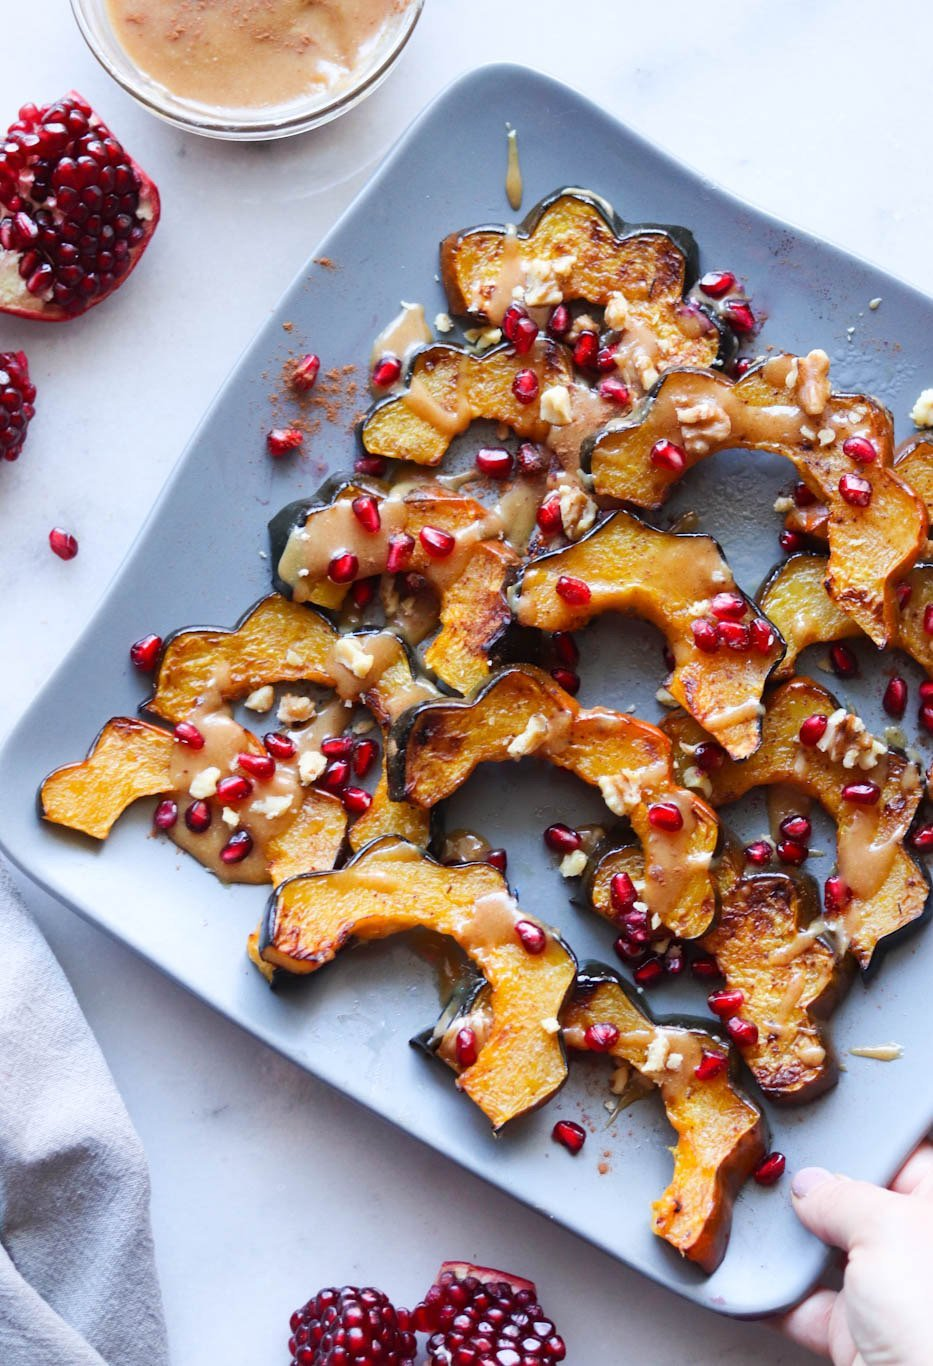 Sliced, Roasted butternut squash is plated on a blue square dish and drizzled with maple tahini drizzle and sprinkled with pomegranate arils.